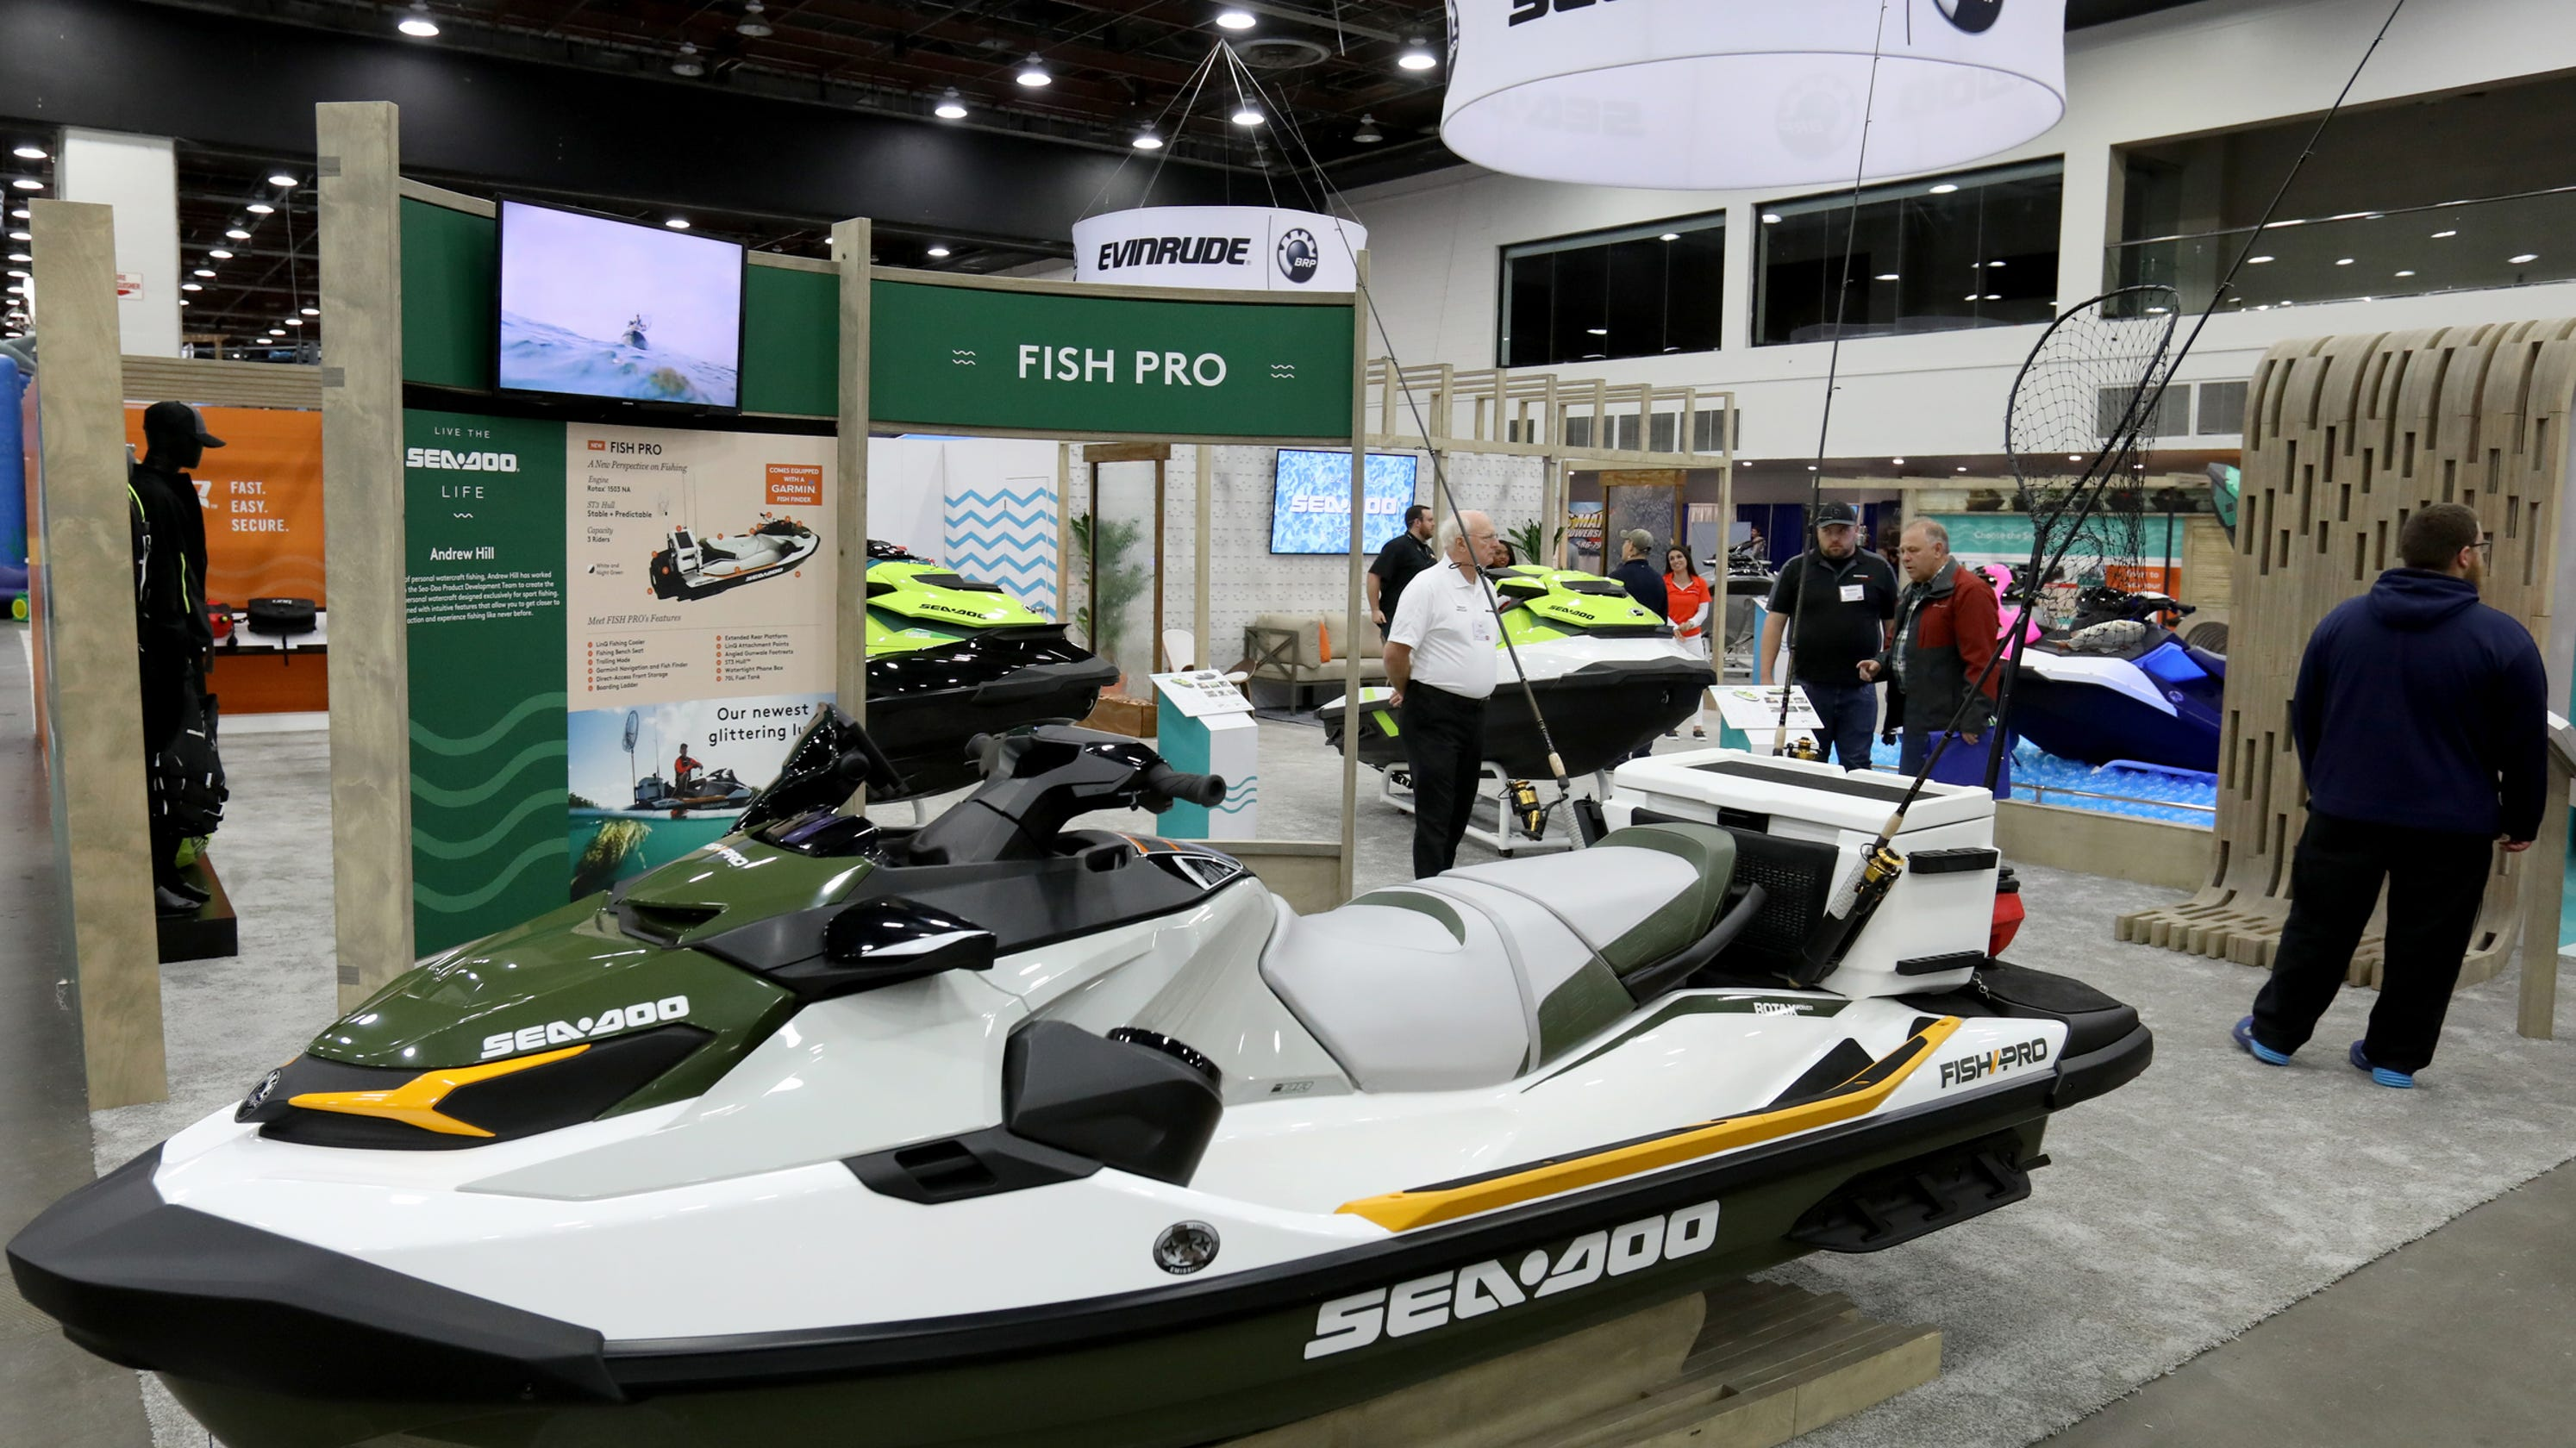 Sea-Doo unveils watercraft built for fishing in Detroit